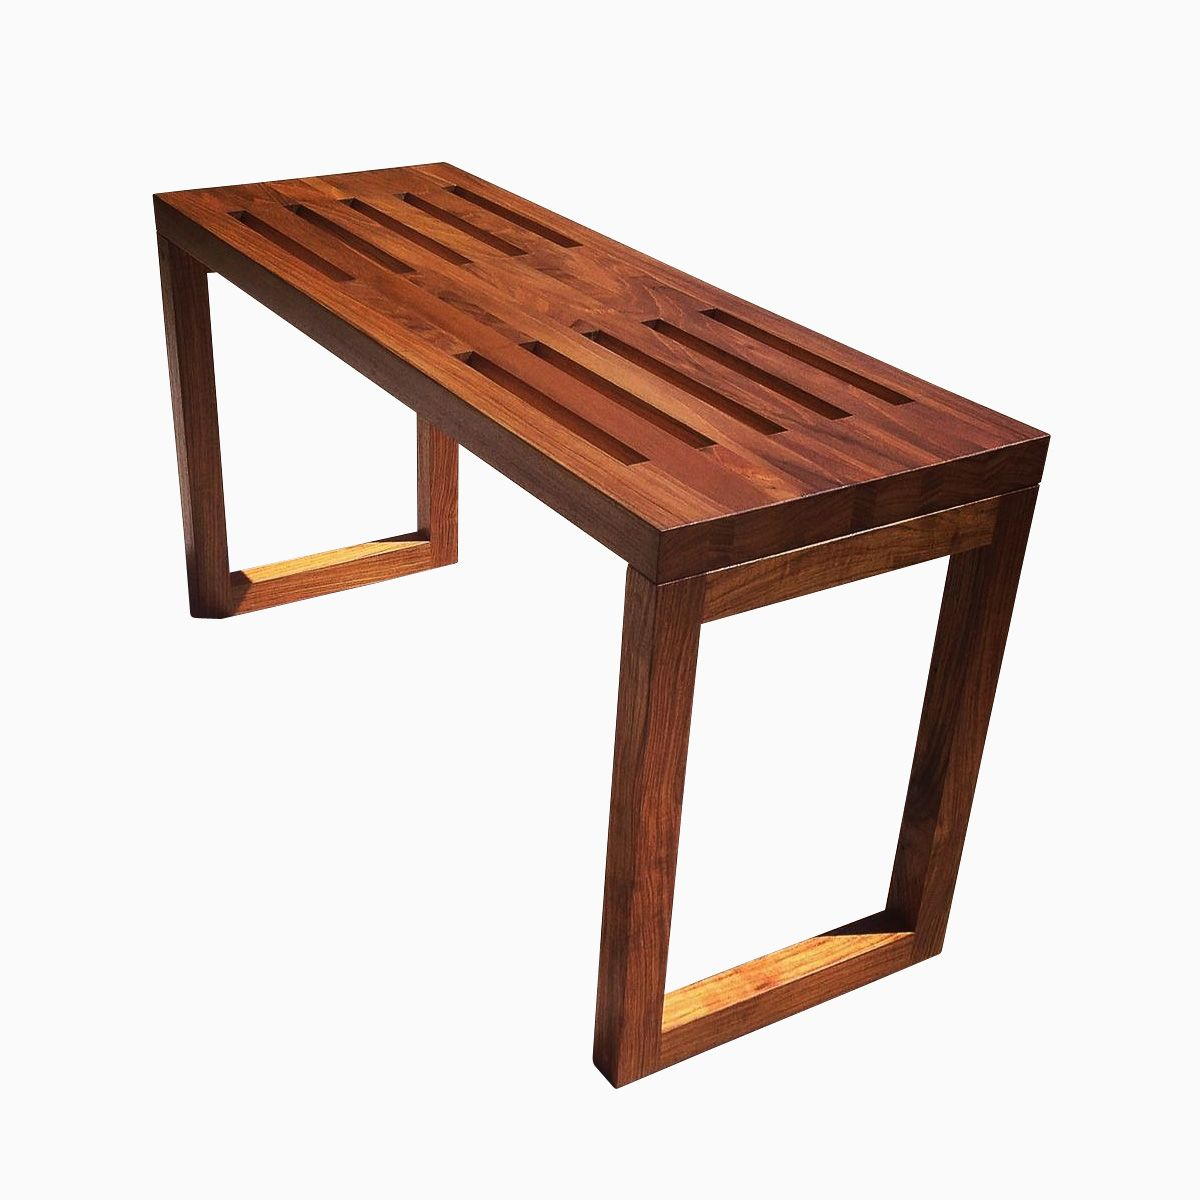 Buy a Hand Made Modern Teak Bench, made to order from ...